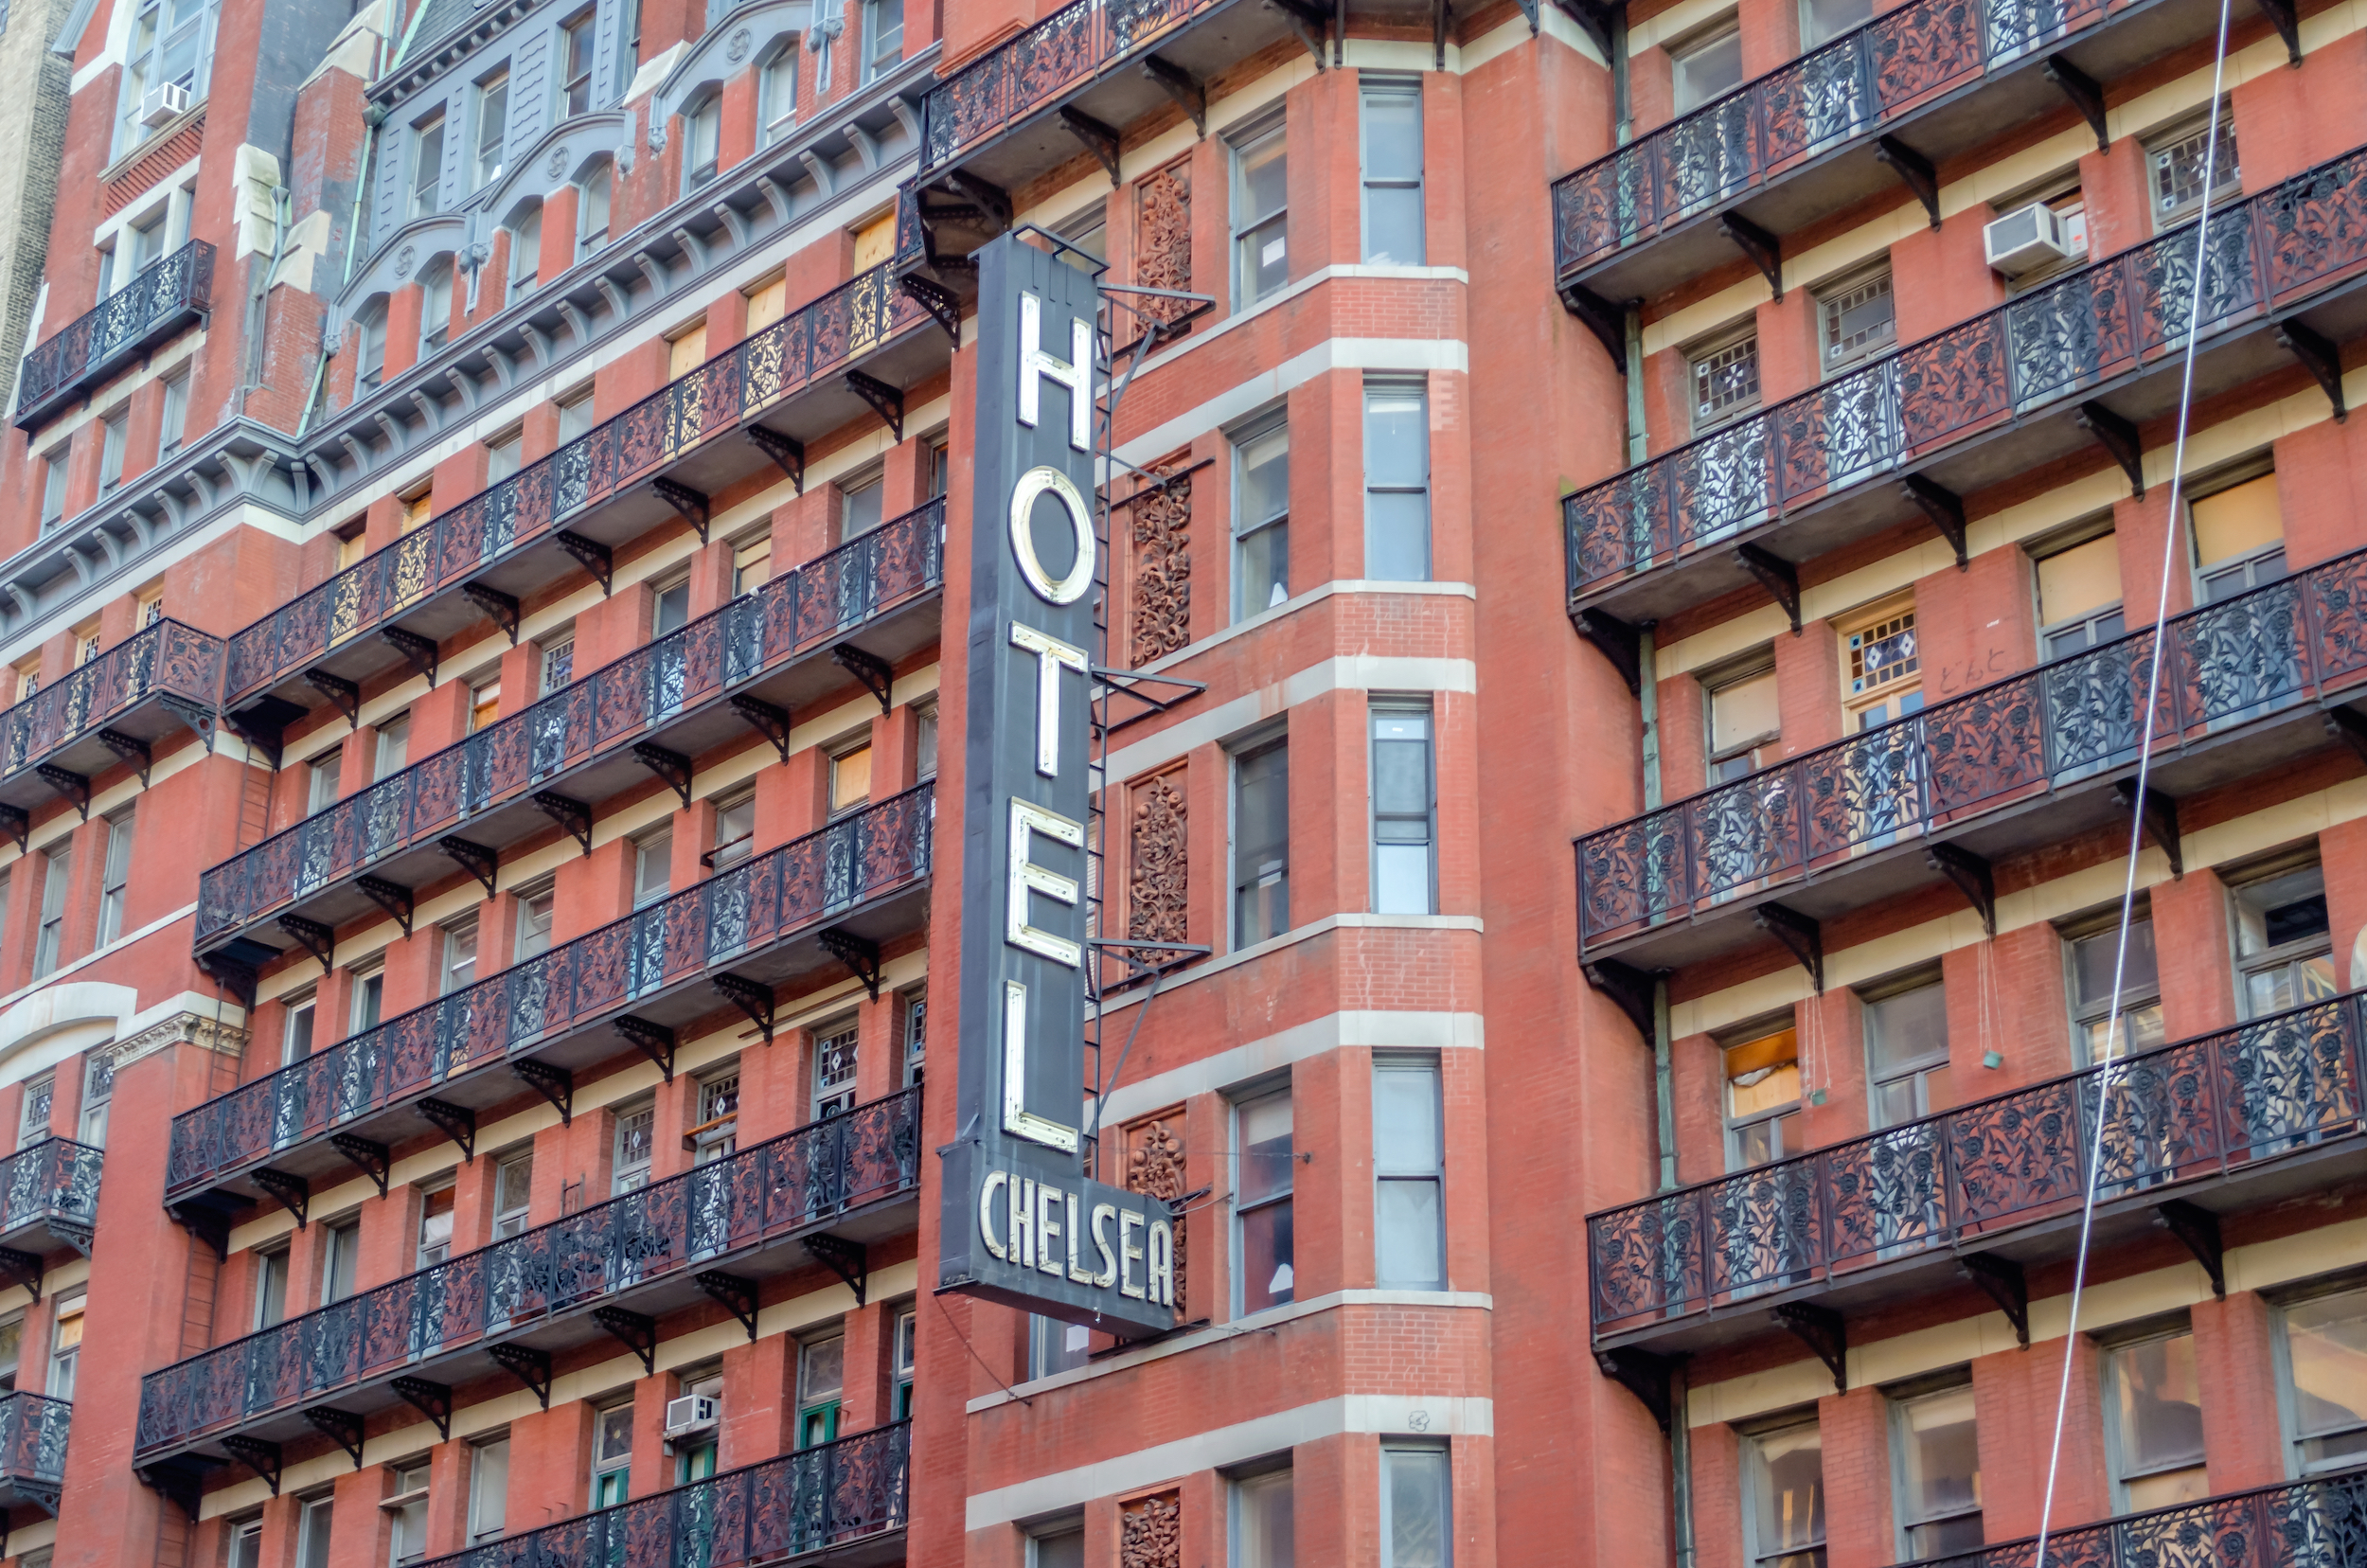 Hotel Chelsea holdout tenants sue to remain in storied building